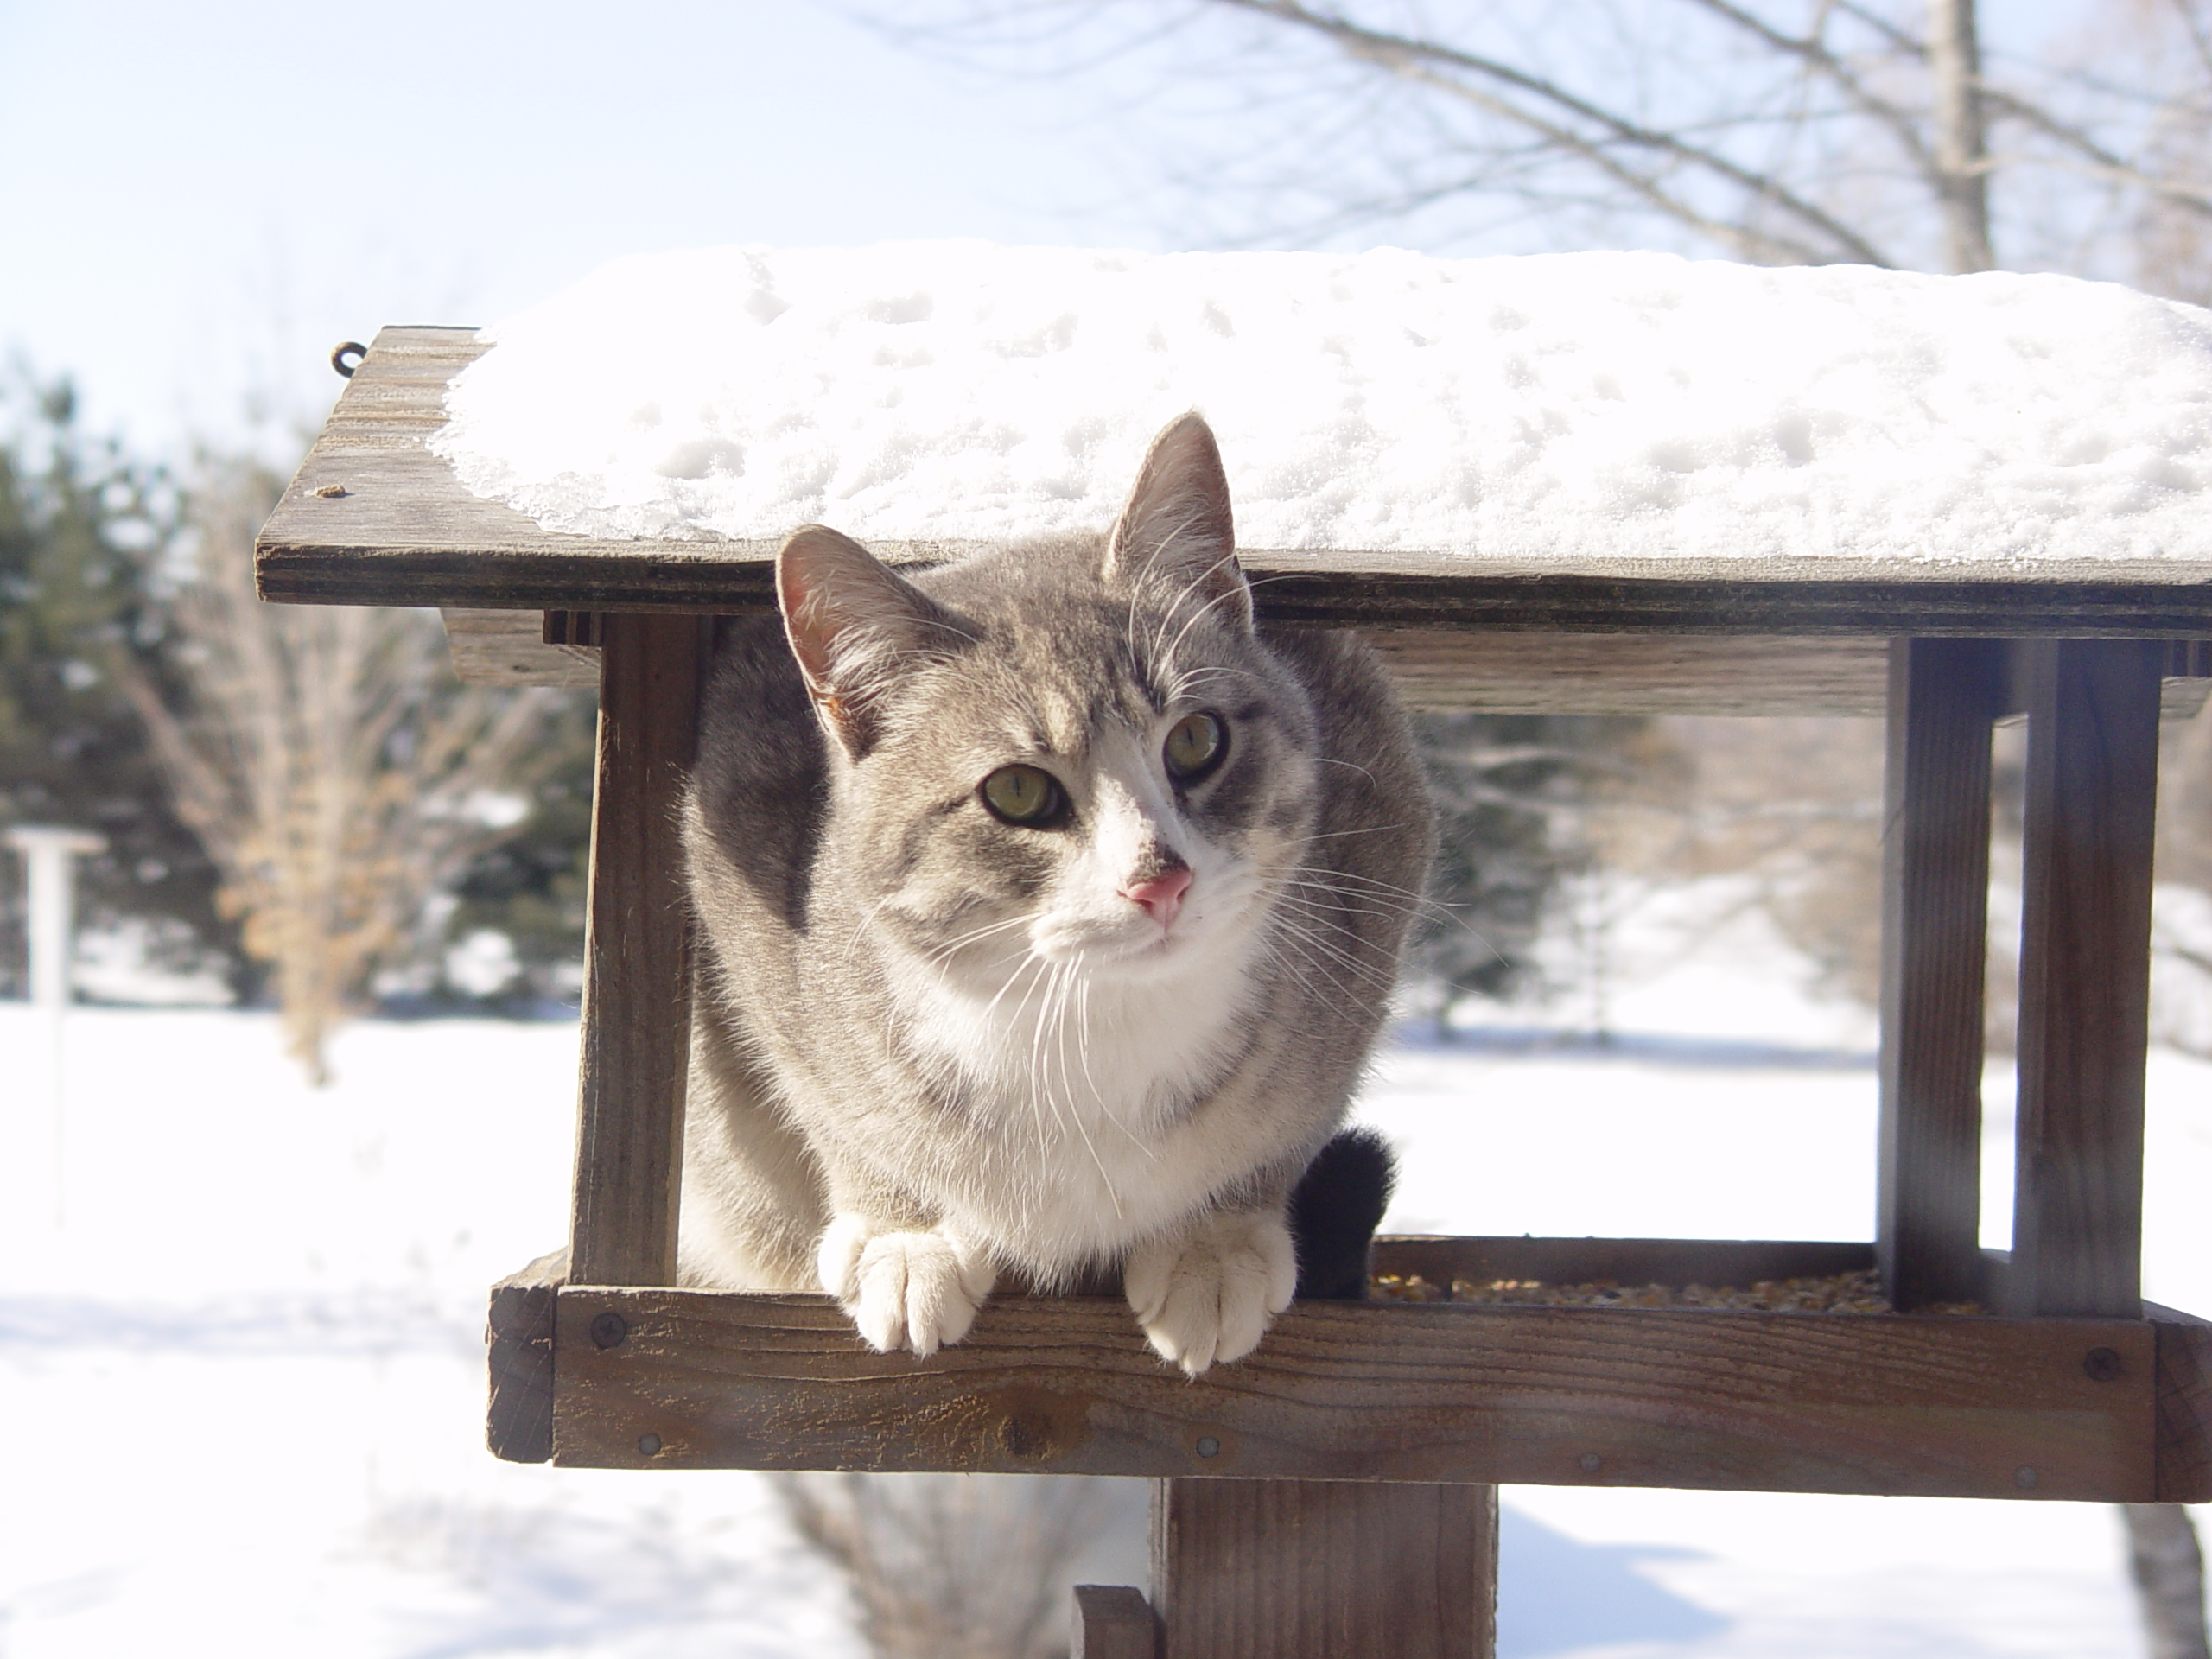 Protecting Cats in Winter